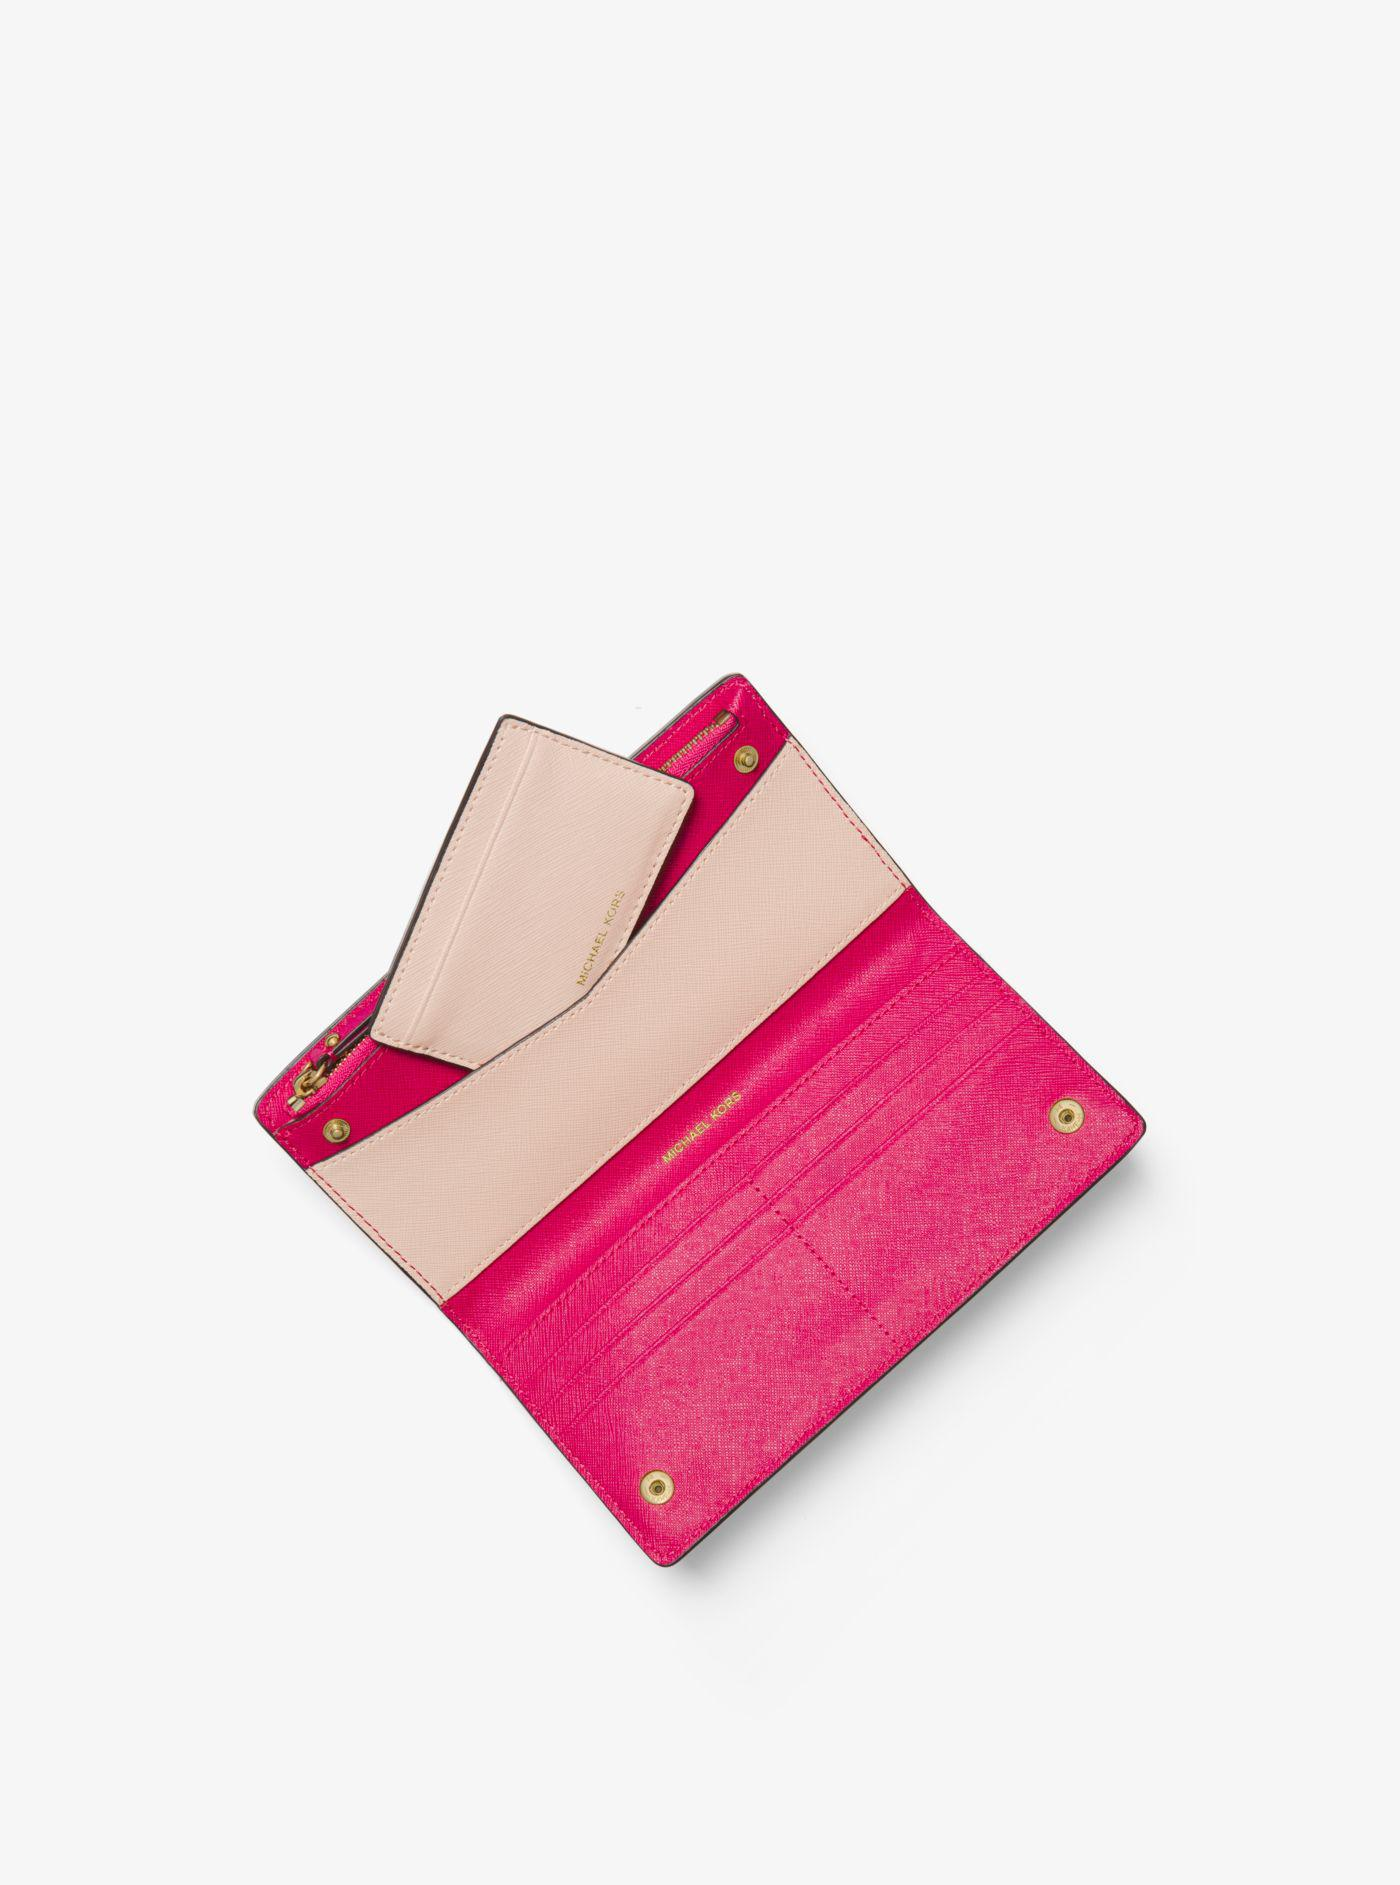 c9f87b3442b0 coupon code michael kors pink jet set saffiano leather slim wallet lyst.  view fullscreen ffc59